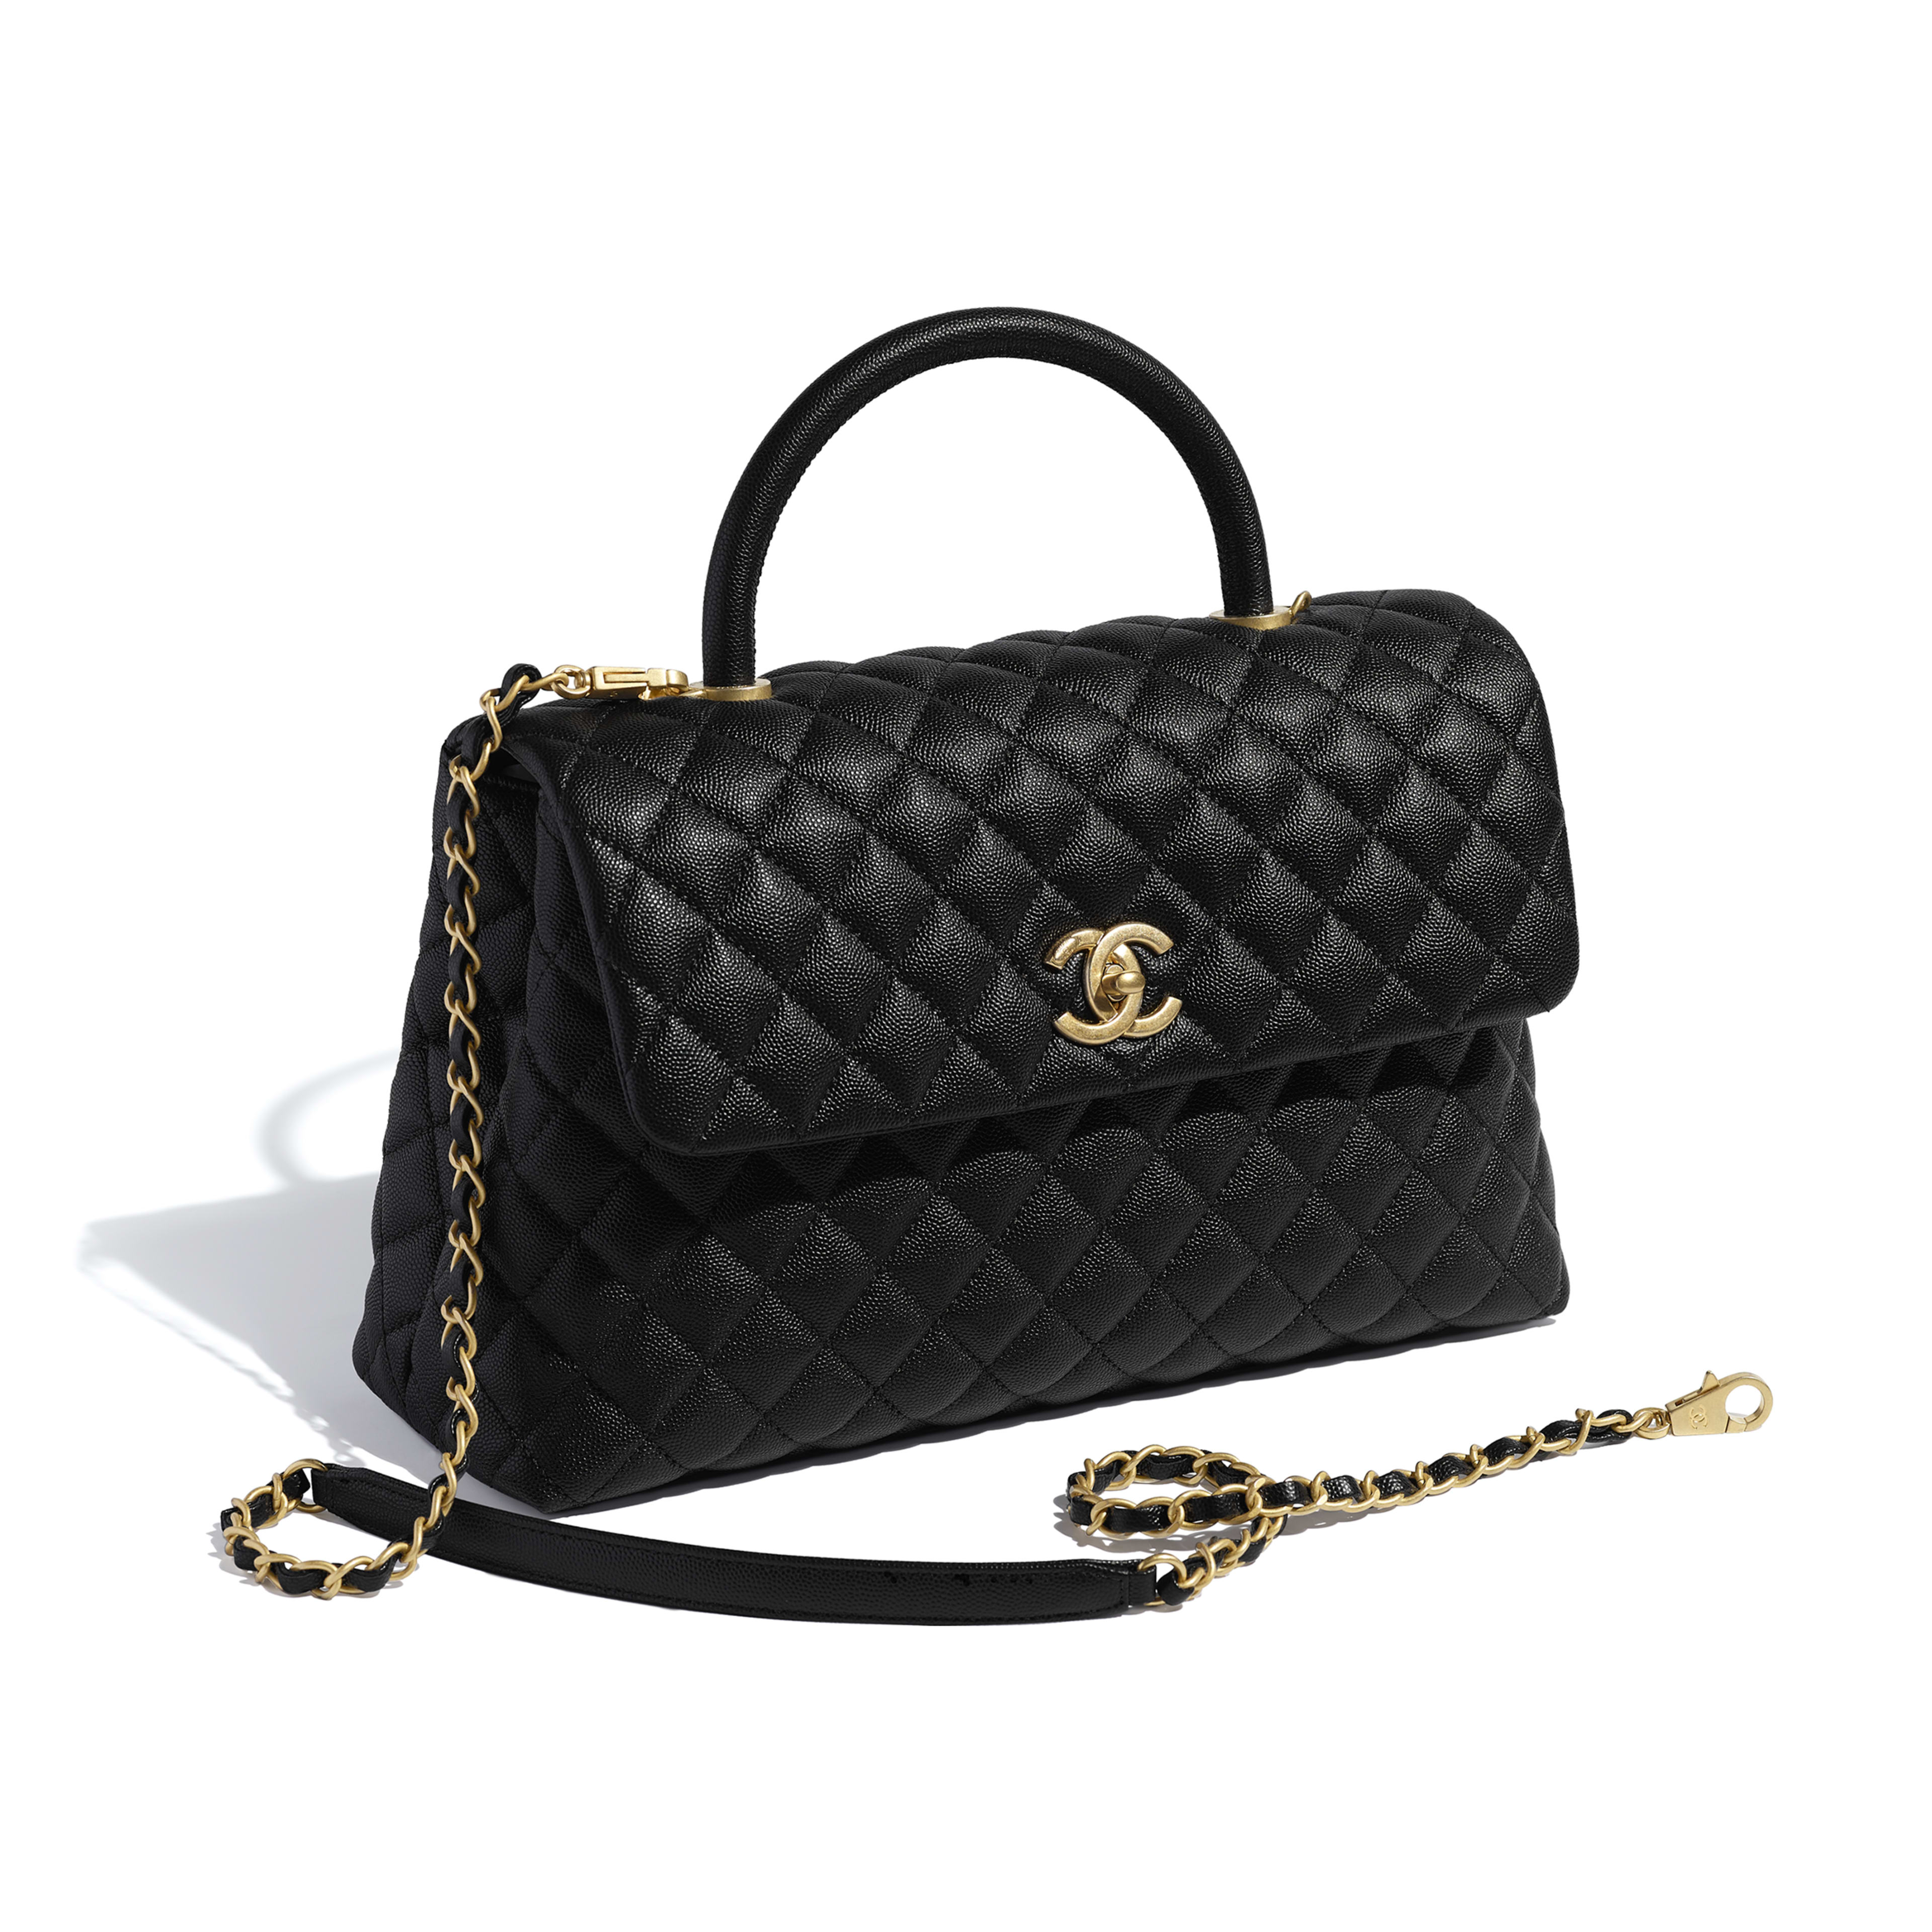 2b8994609e9 Large Flap Bag with Top Handle - Black - Grained Calfskin   Gold-Tone Metal  ...